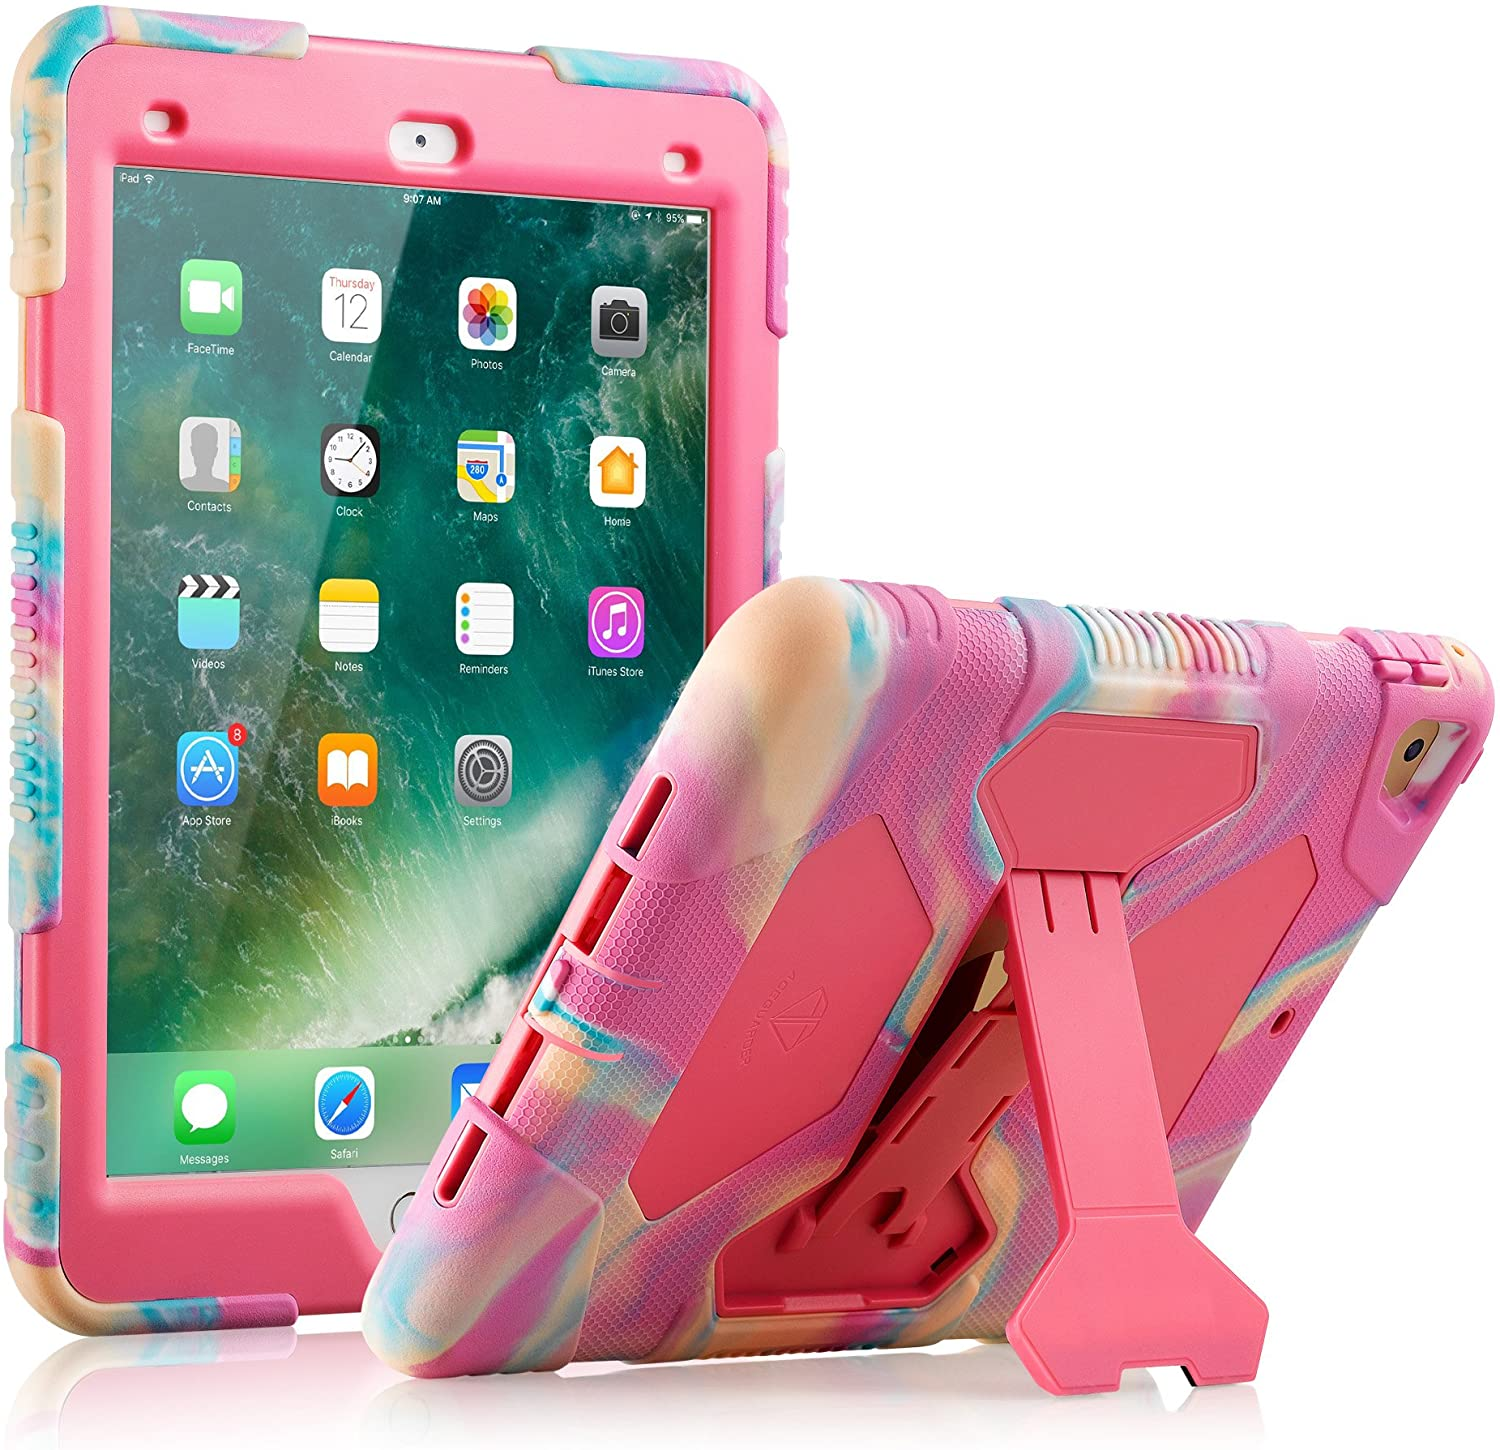 ACEGUARDER iPad 2017/2018 iPad 9.7 inch Case, Shockproof Impact Resistant Protective Case Cover Full Body Rugged for Kids with Kickstand for ipad 5 th/ipad 6 th Generation, Pink Camo/Rose